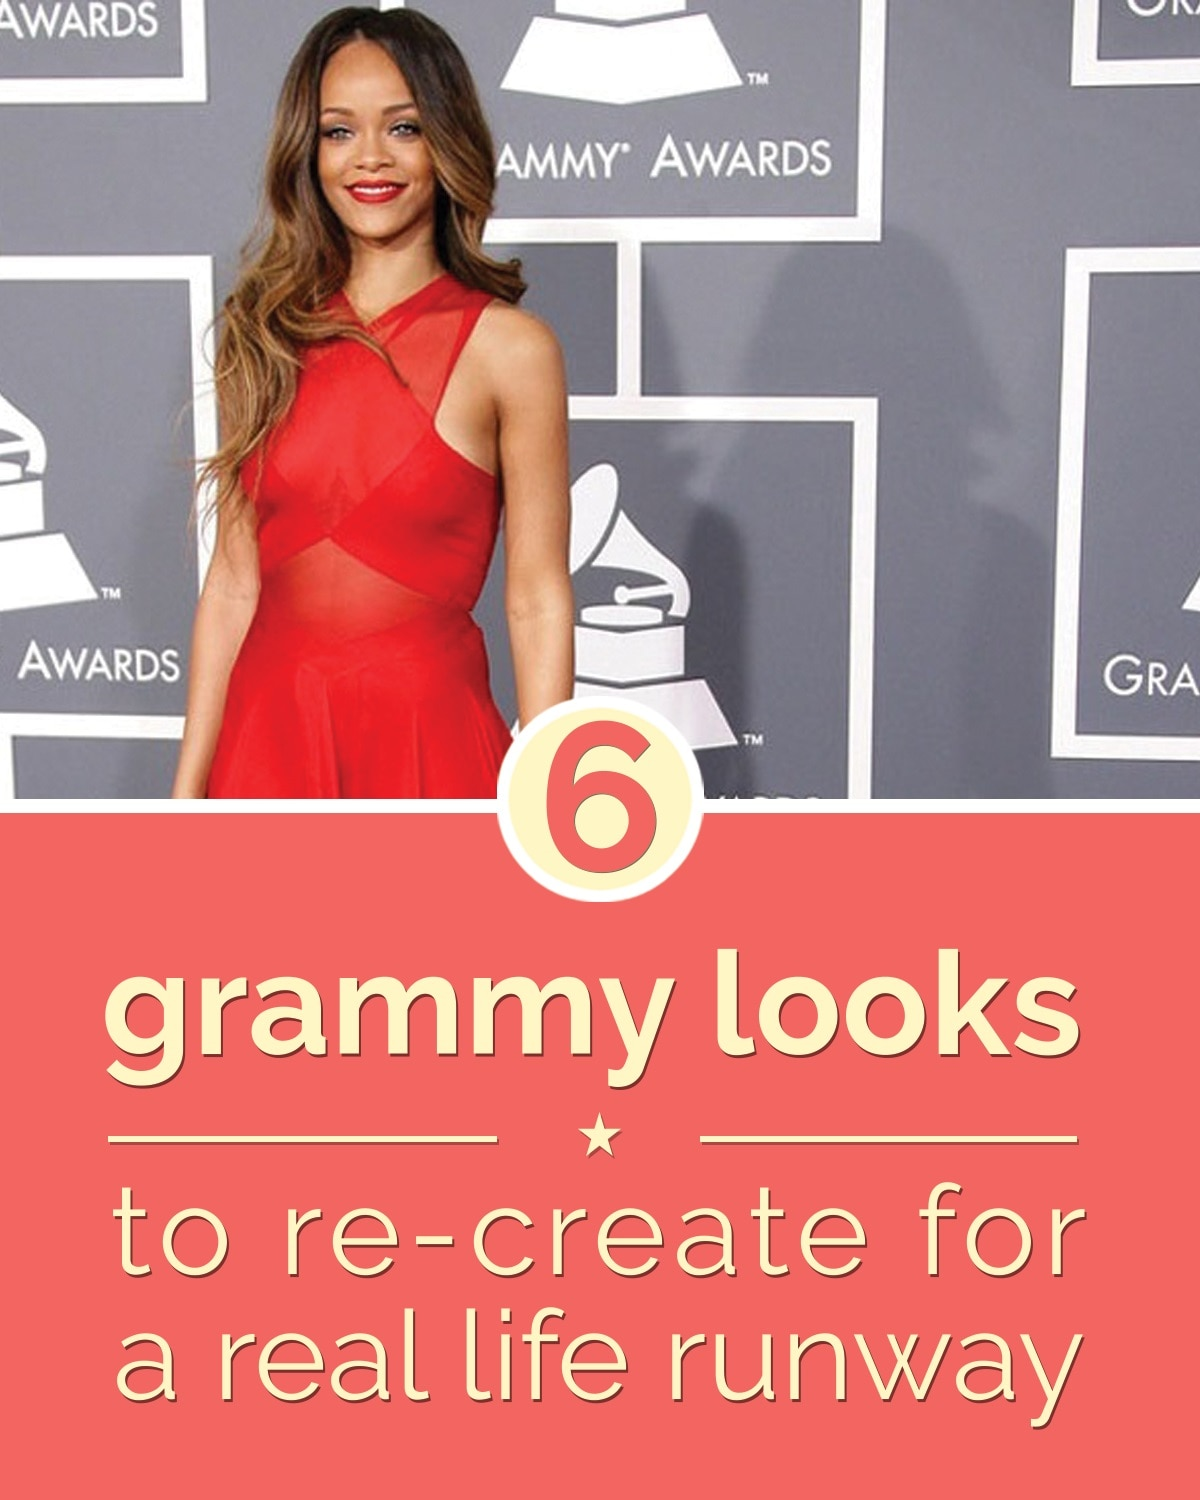 style-grammy-looks-to-recreate